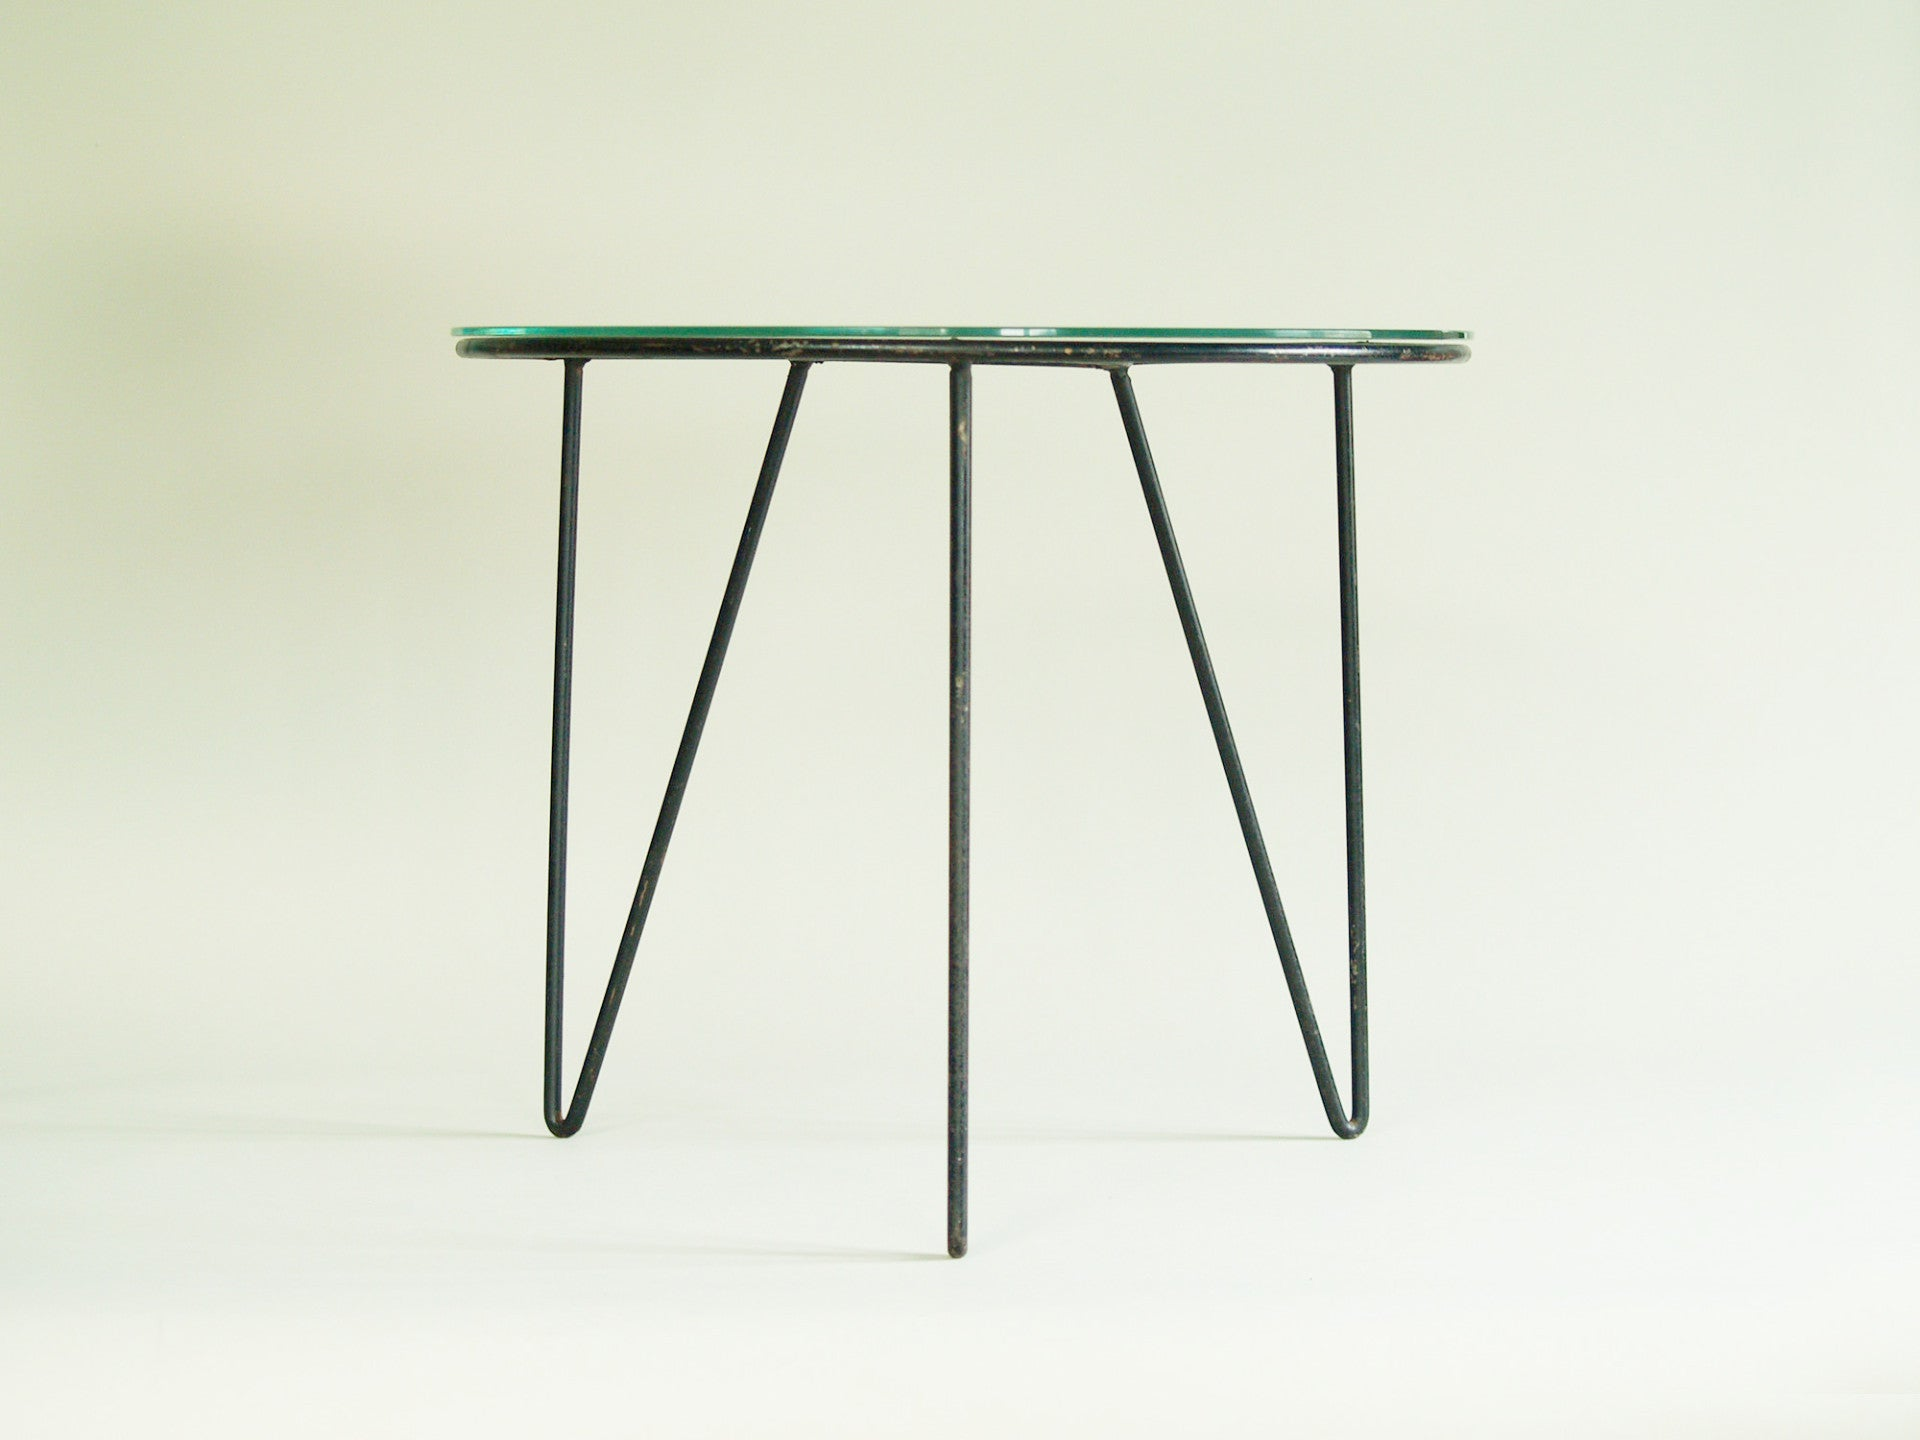 Guéridon / table basse moderniste, France (vers 1953)..Modernist occasional coffee table, France (circa 1953)